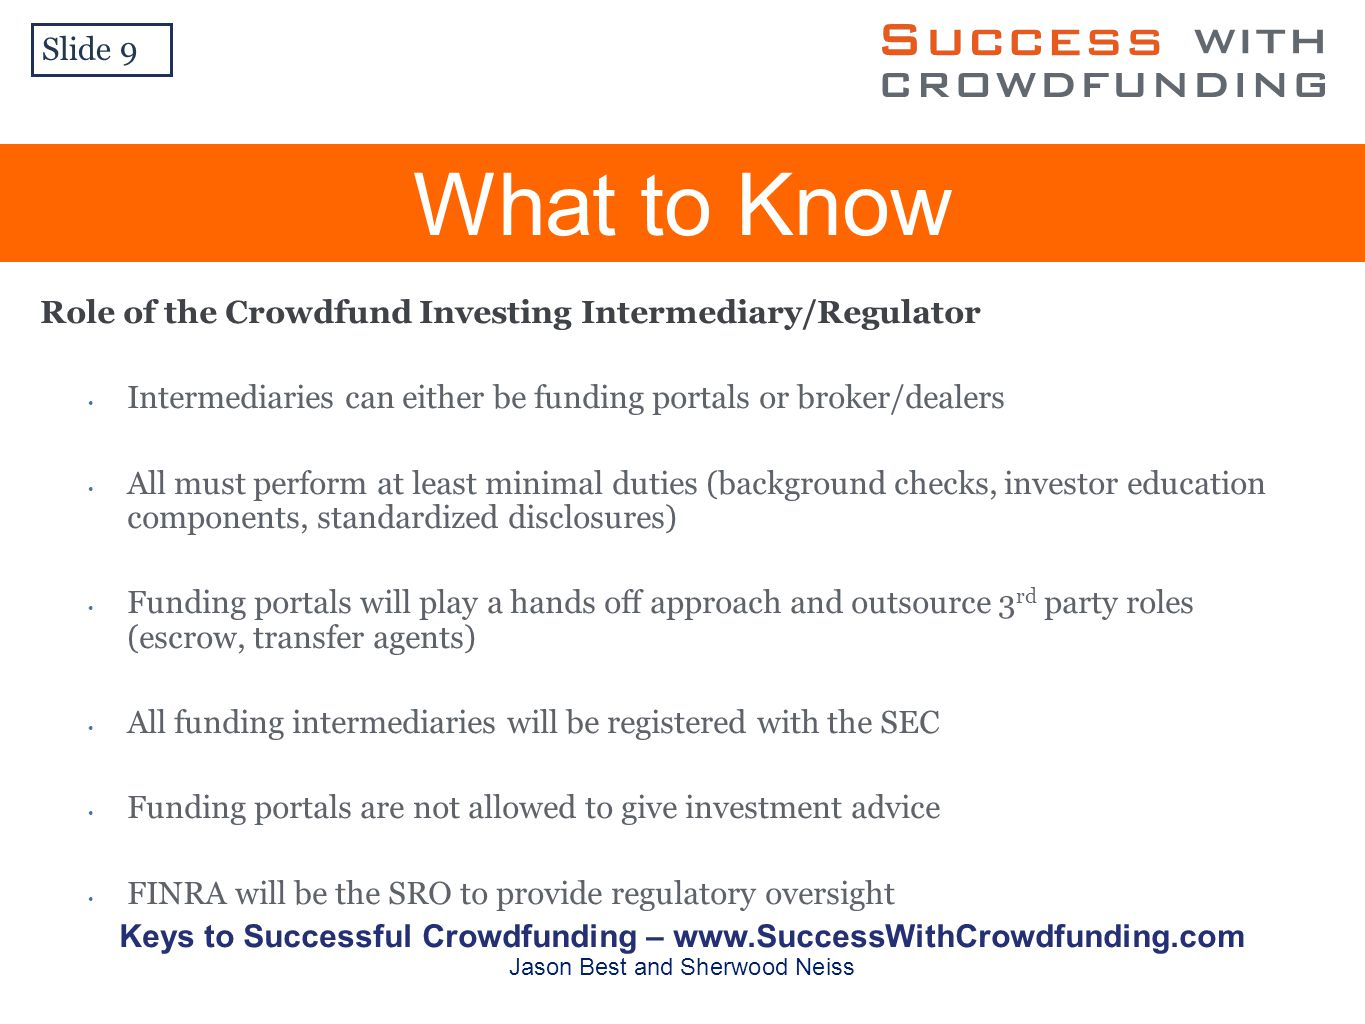 Role of the Crowdfund Investing Intermediary/Regulator Intermediaries can either be funding portals or broker/dealers All must perform at least minima